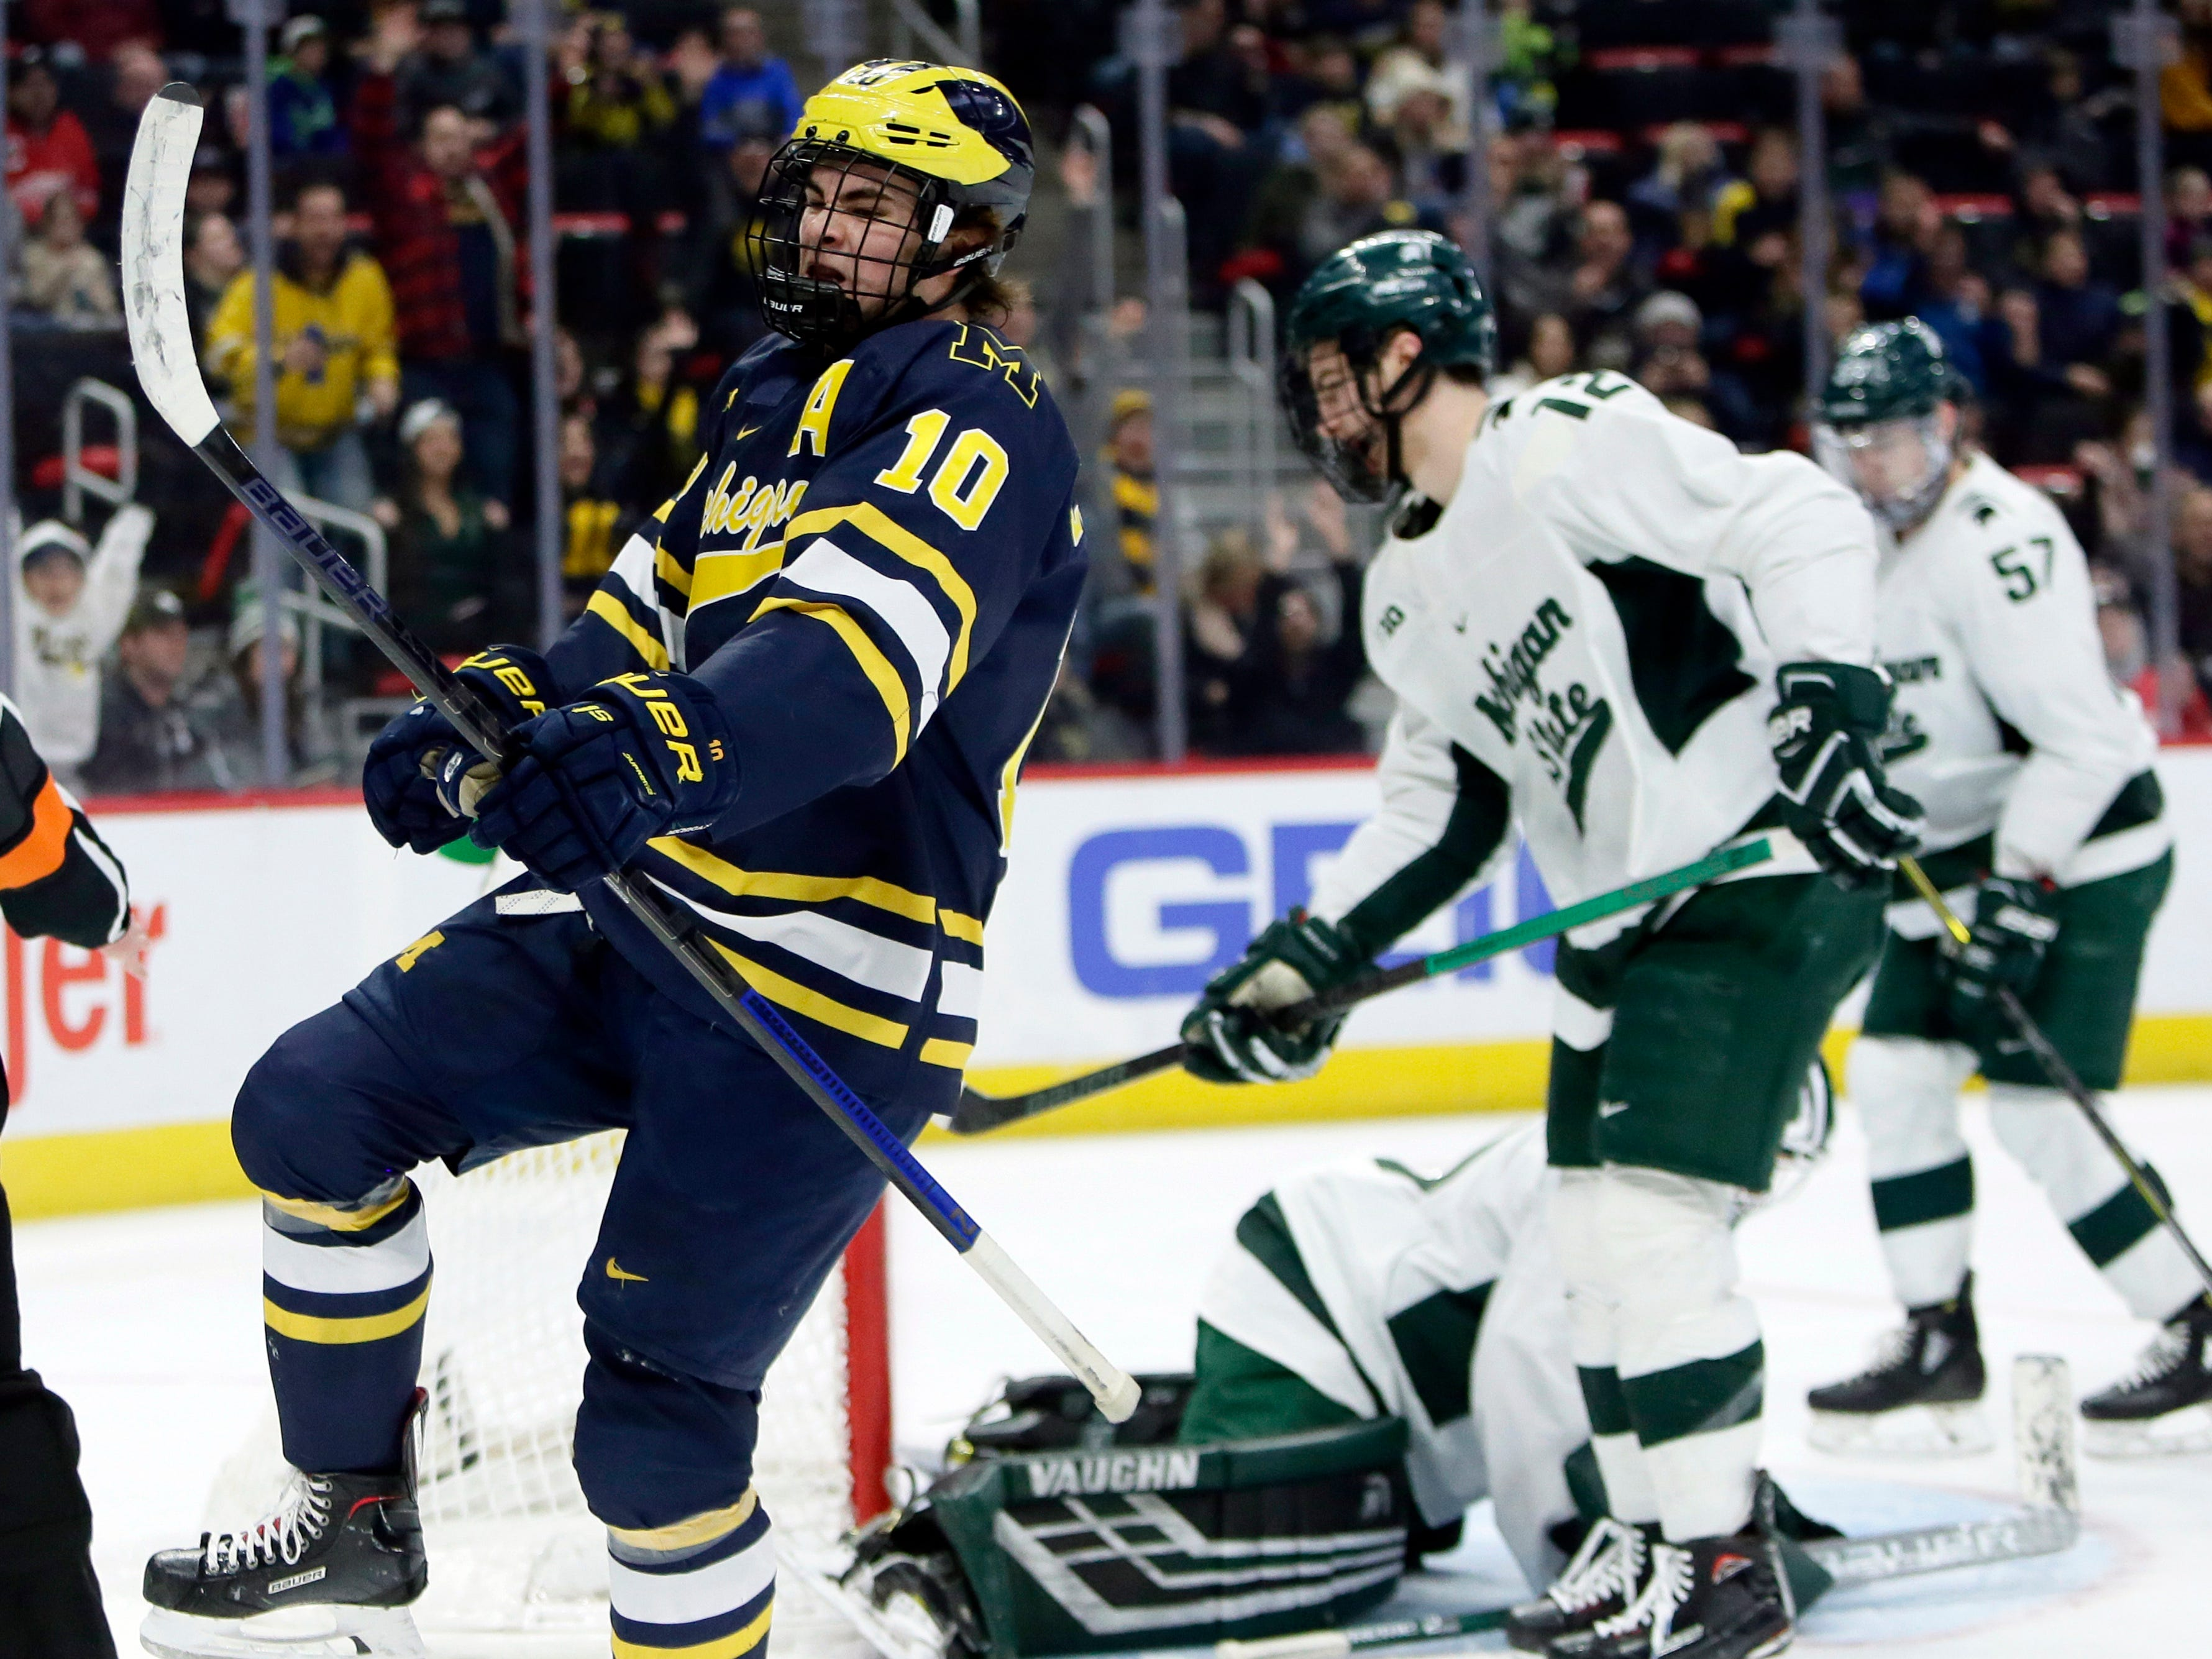 Michigan forward Will Lockwood celebrates after scoring against Michigan State during the first period on Saturday, Feb. 9, 2019, at Little Caesars Arena.